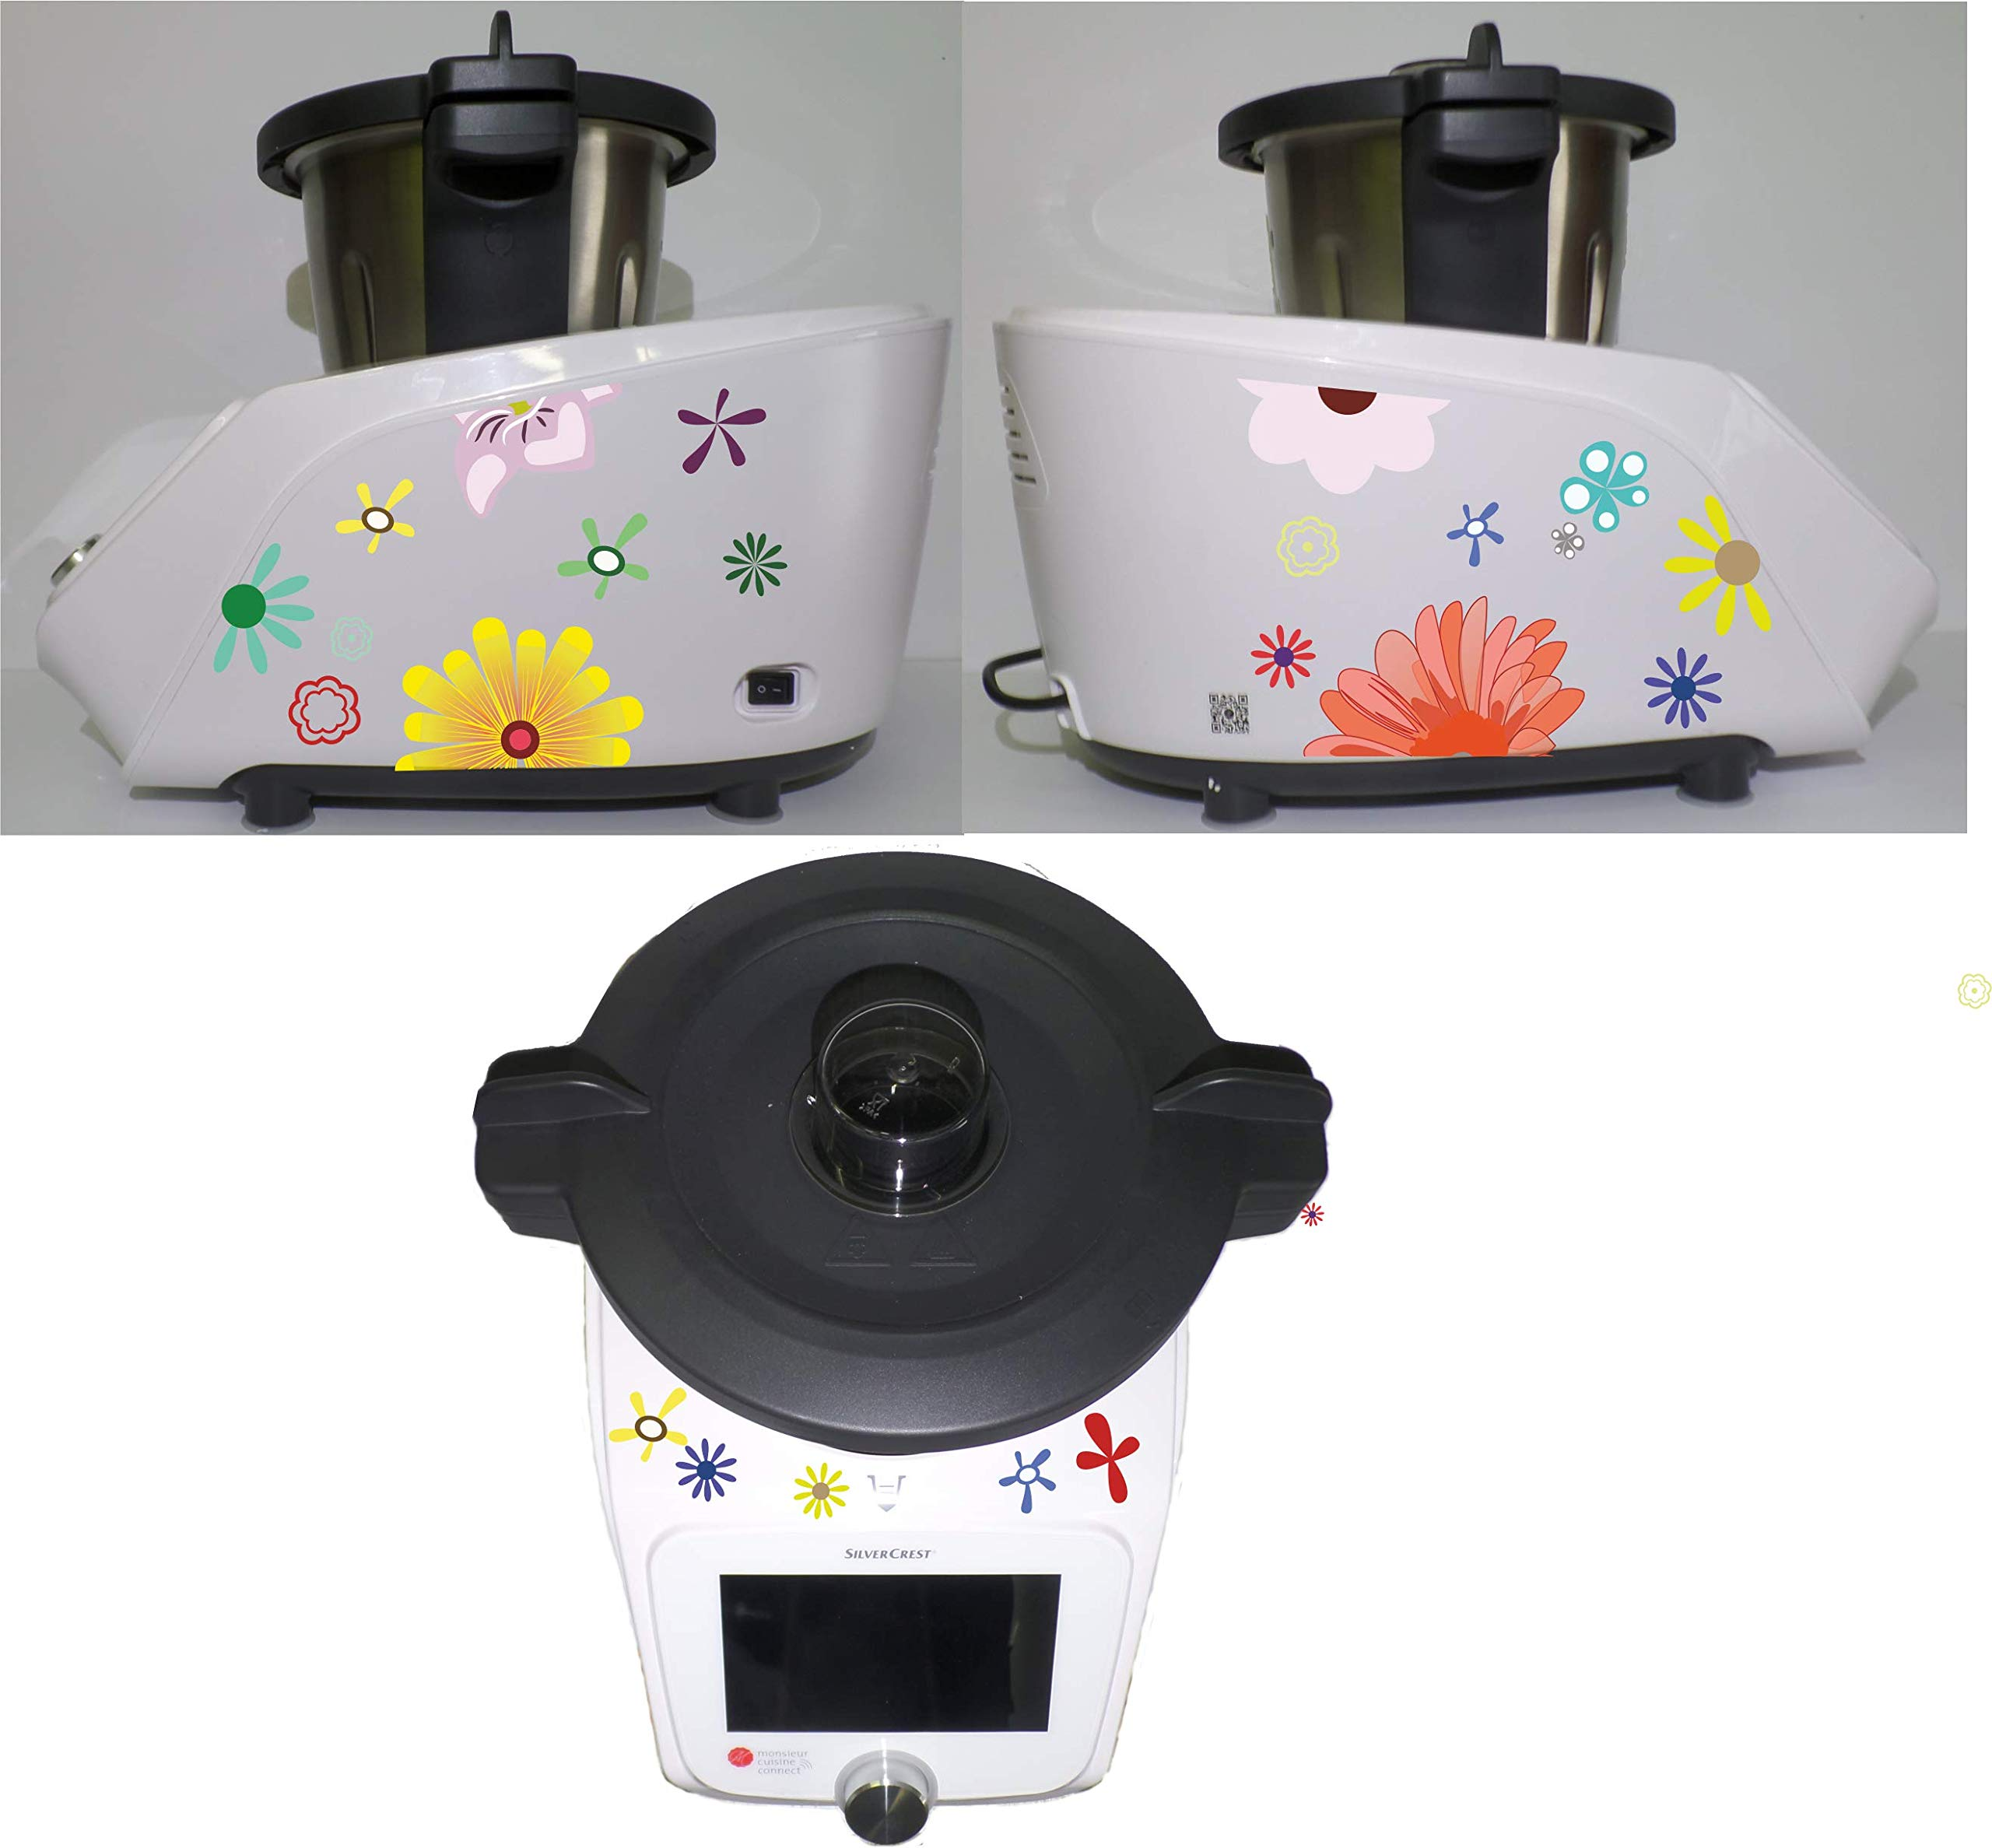 Adhesivo para Monsieur Cuisine Connect, diseño de flores, multicolor: Amazon.es: Hogar